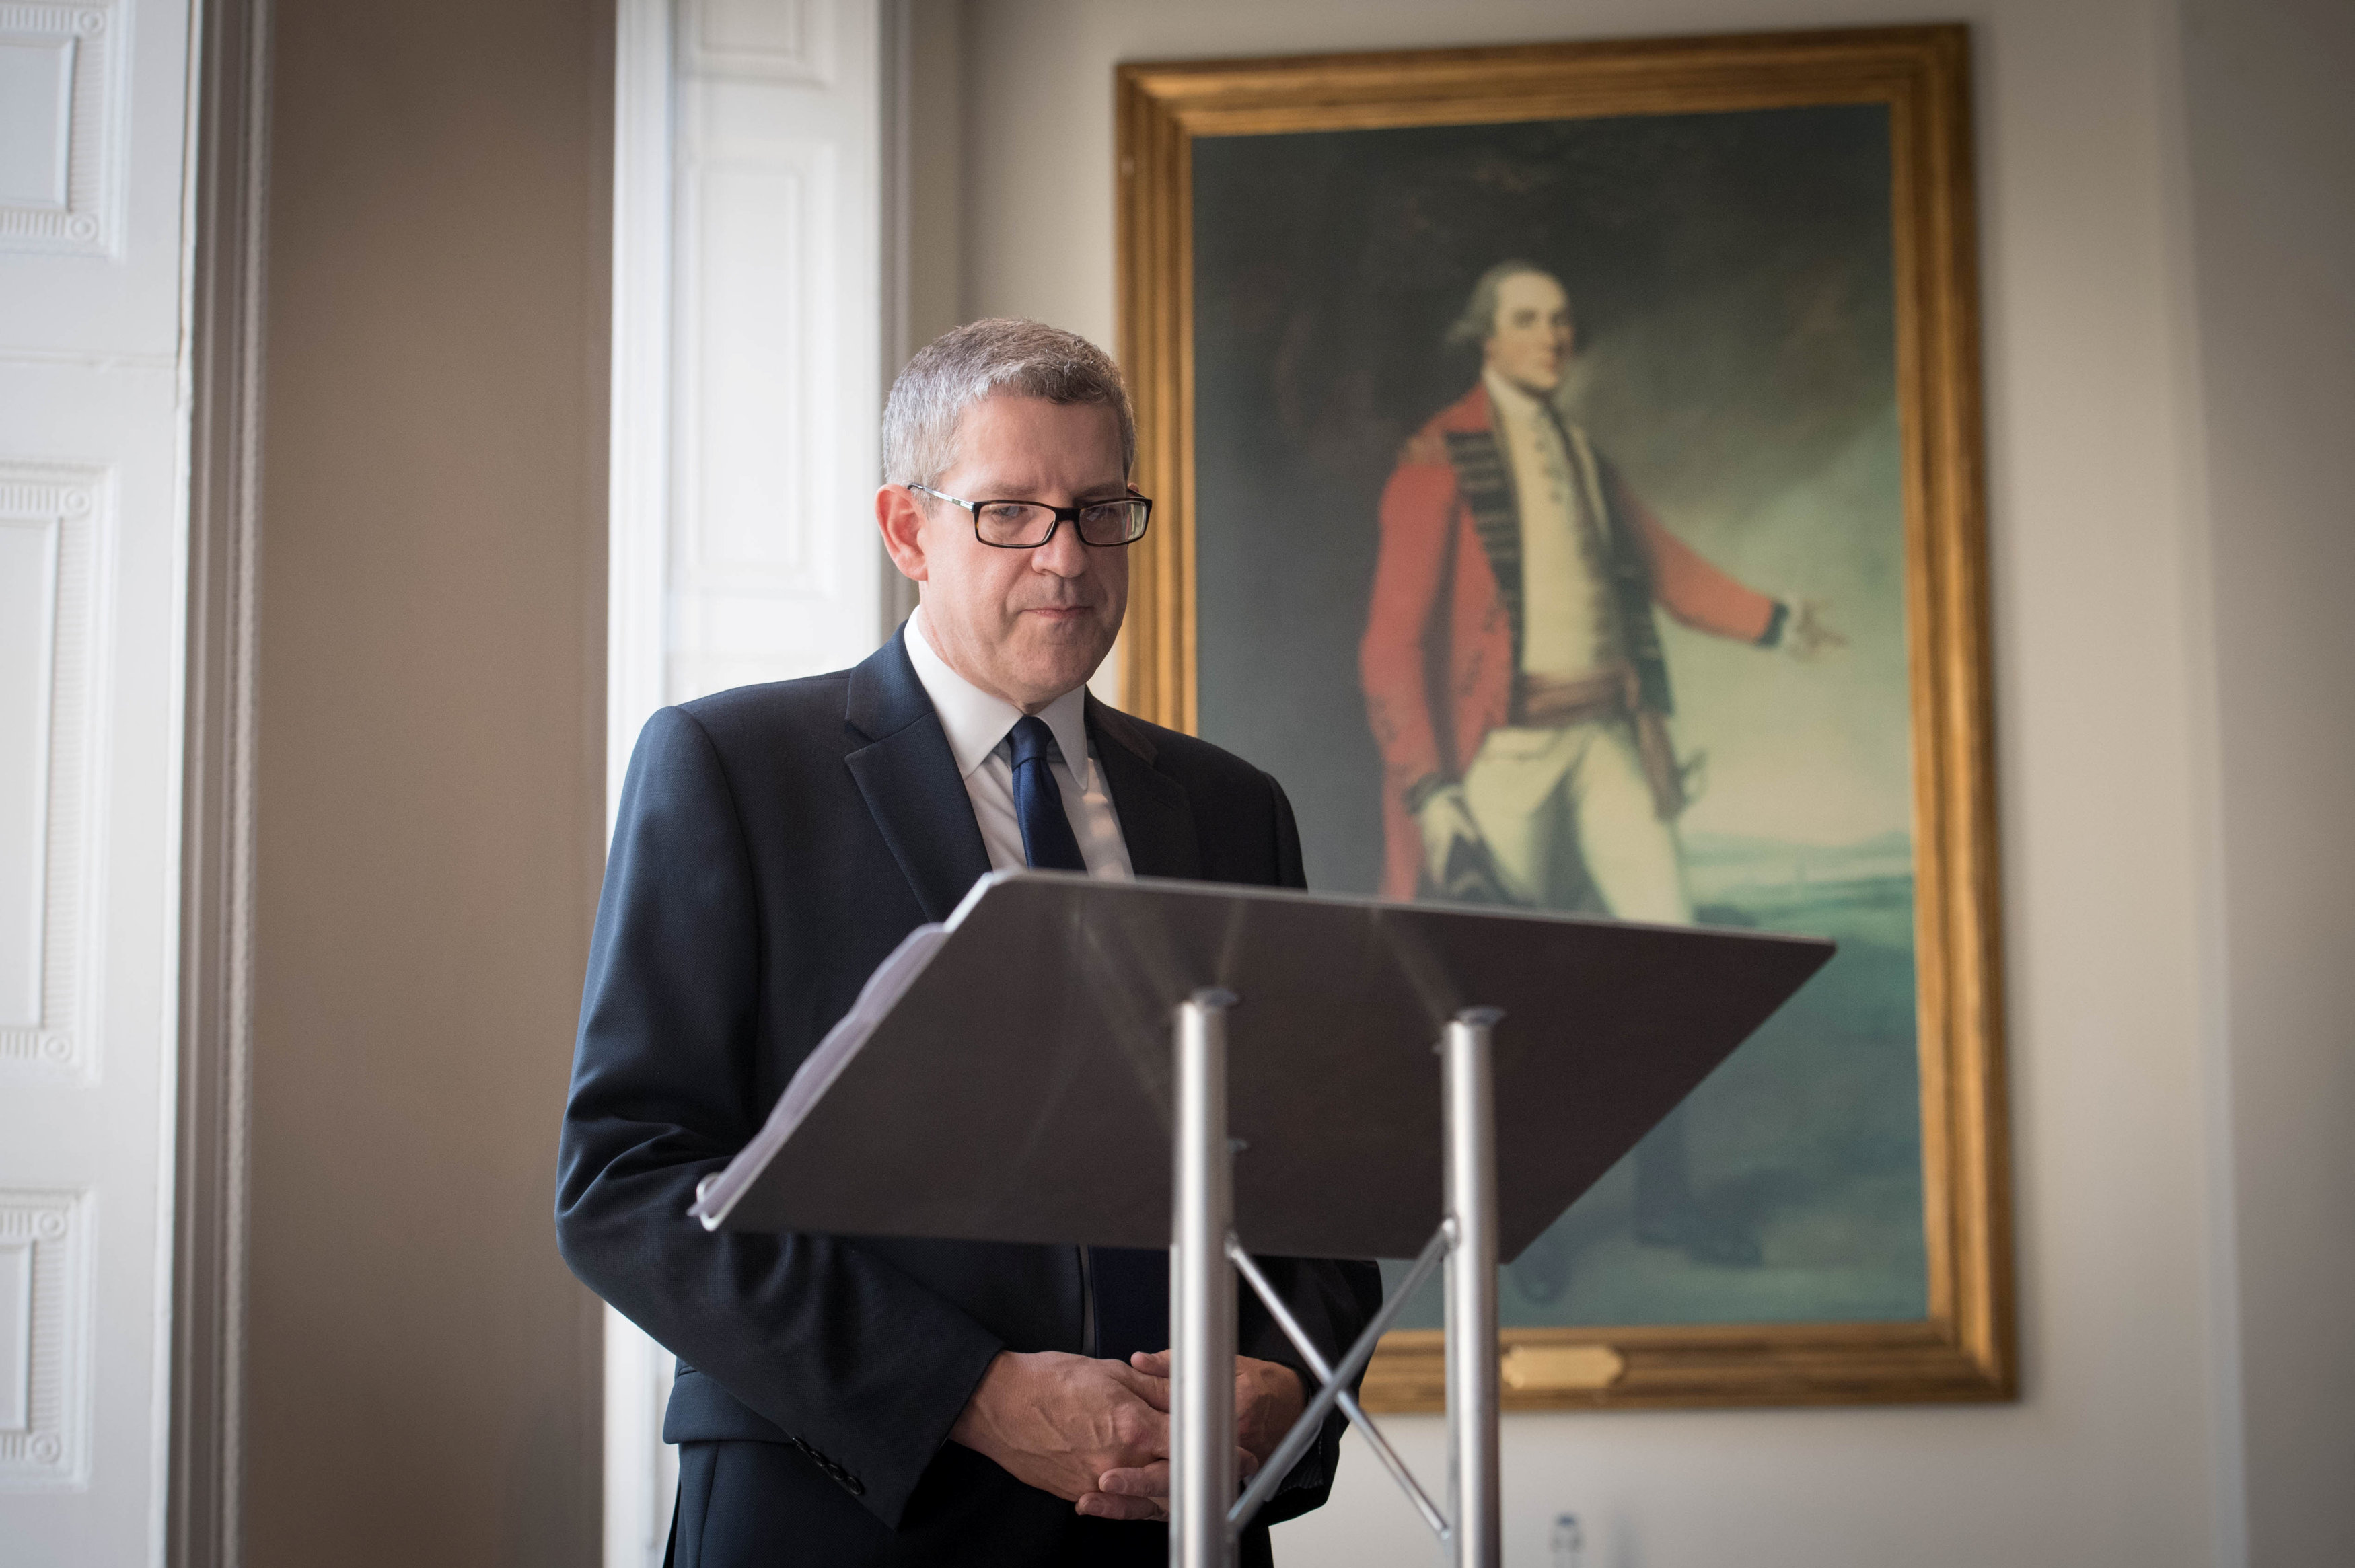 Director General of MI5 Andrew Parker delivers a speech in central London, on the security threat facing Britain October 17, 2017